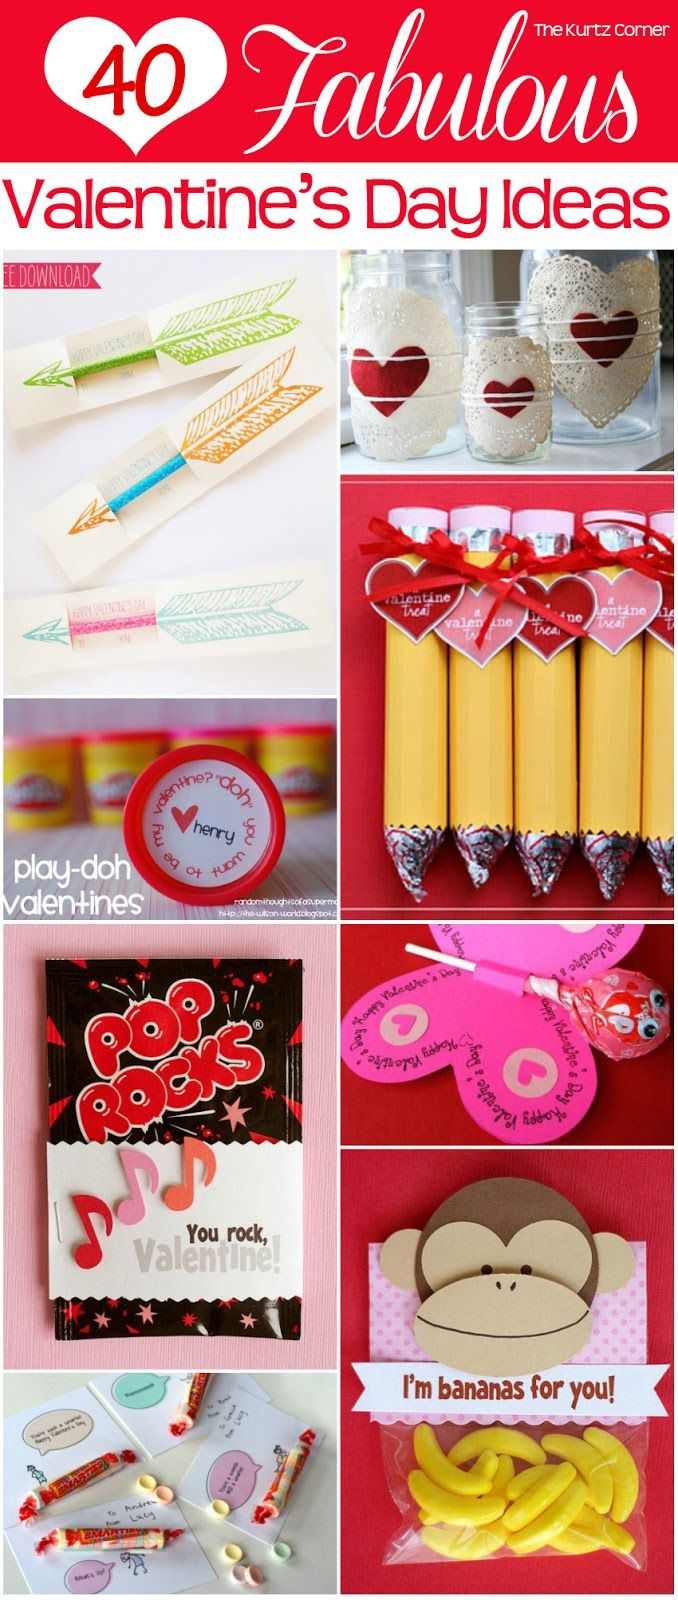 valentines day ideas not cheesy